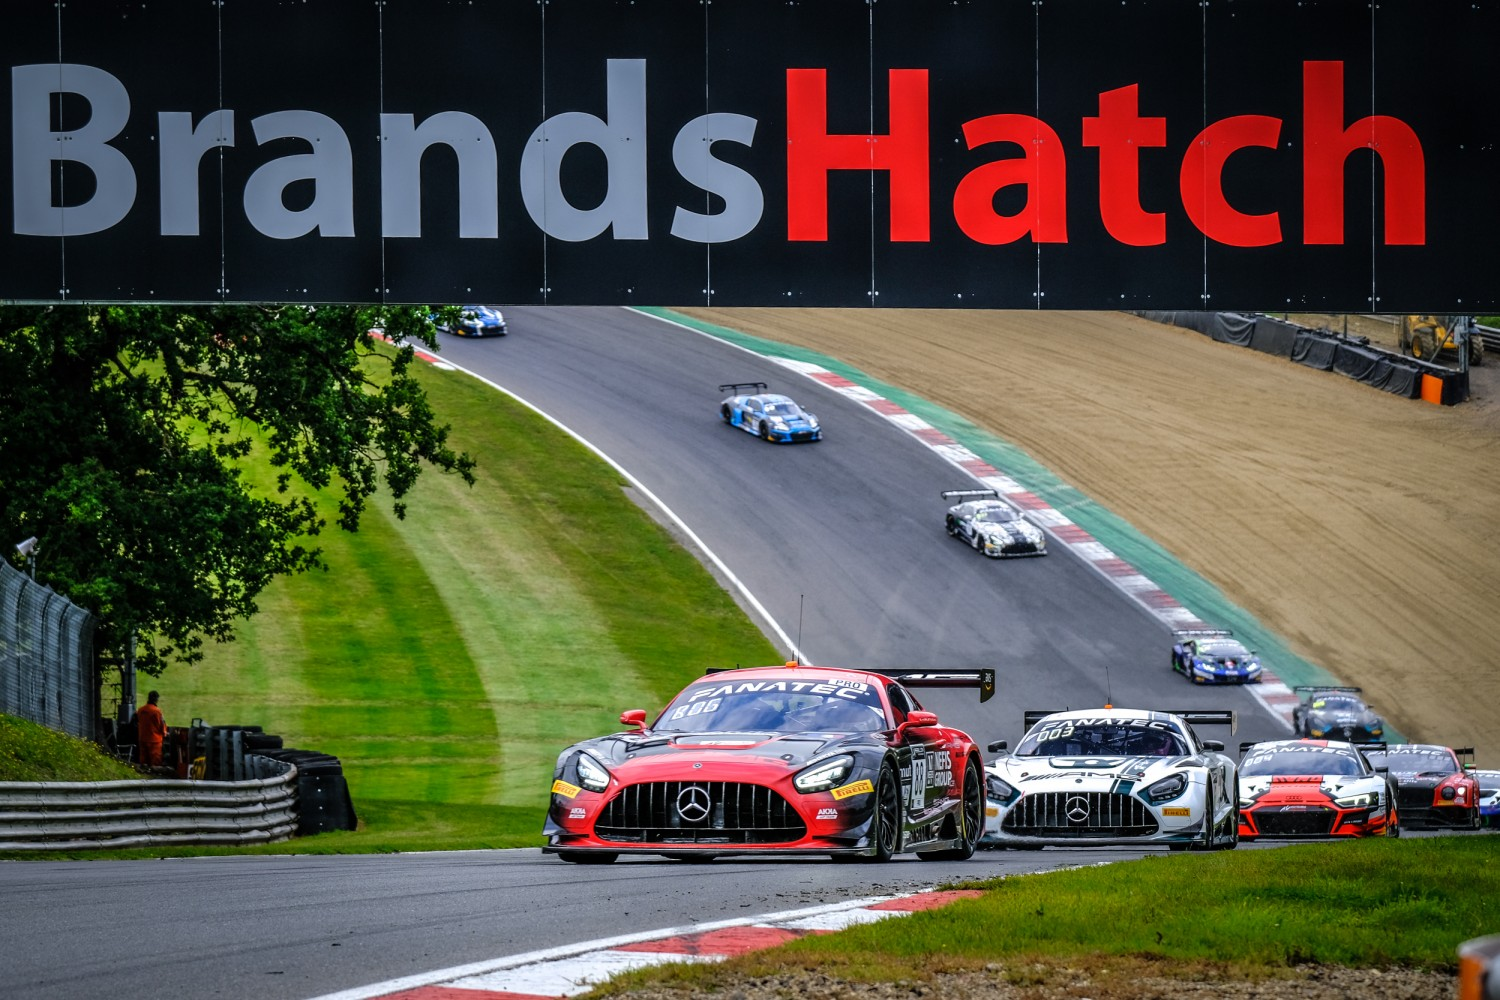 AKKA ASP Mercedes-AMG takes Sprint Cup victory in dramatic finish at Brands Hatch